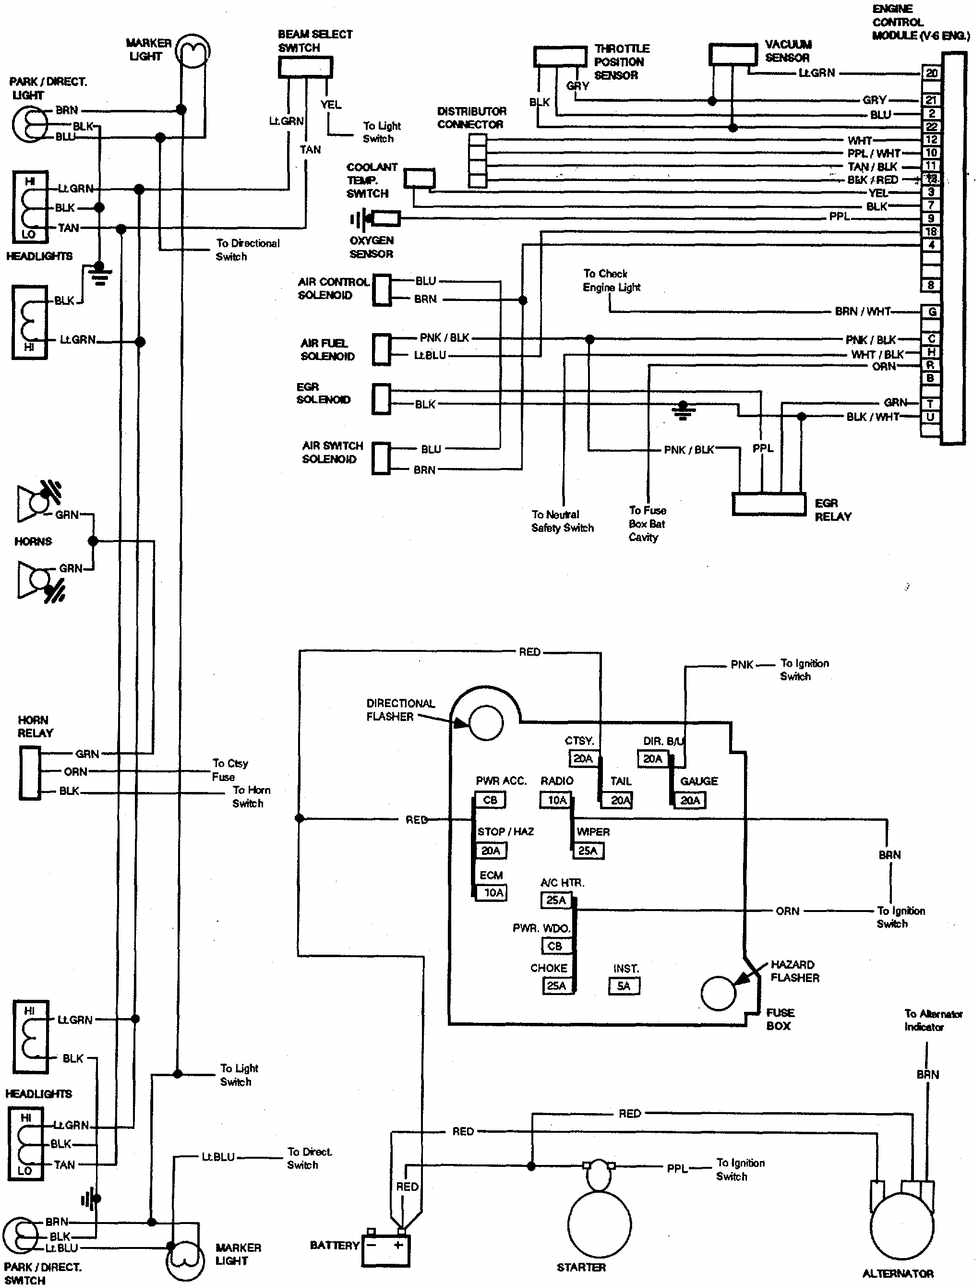 1982 el camino head lights fuse box data wiring diagrams u2022 rh mikeadkinsguitar com 1984 el camino engine wiring diagram